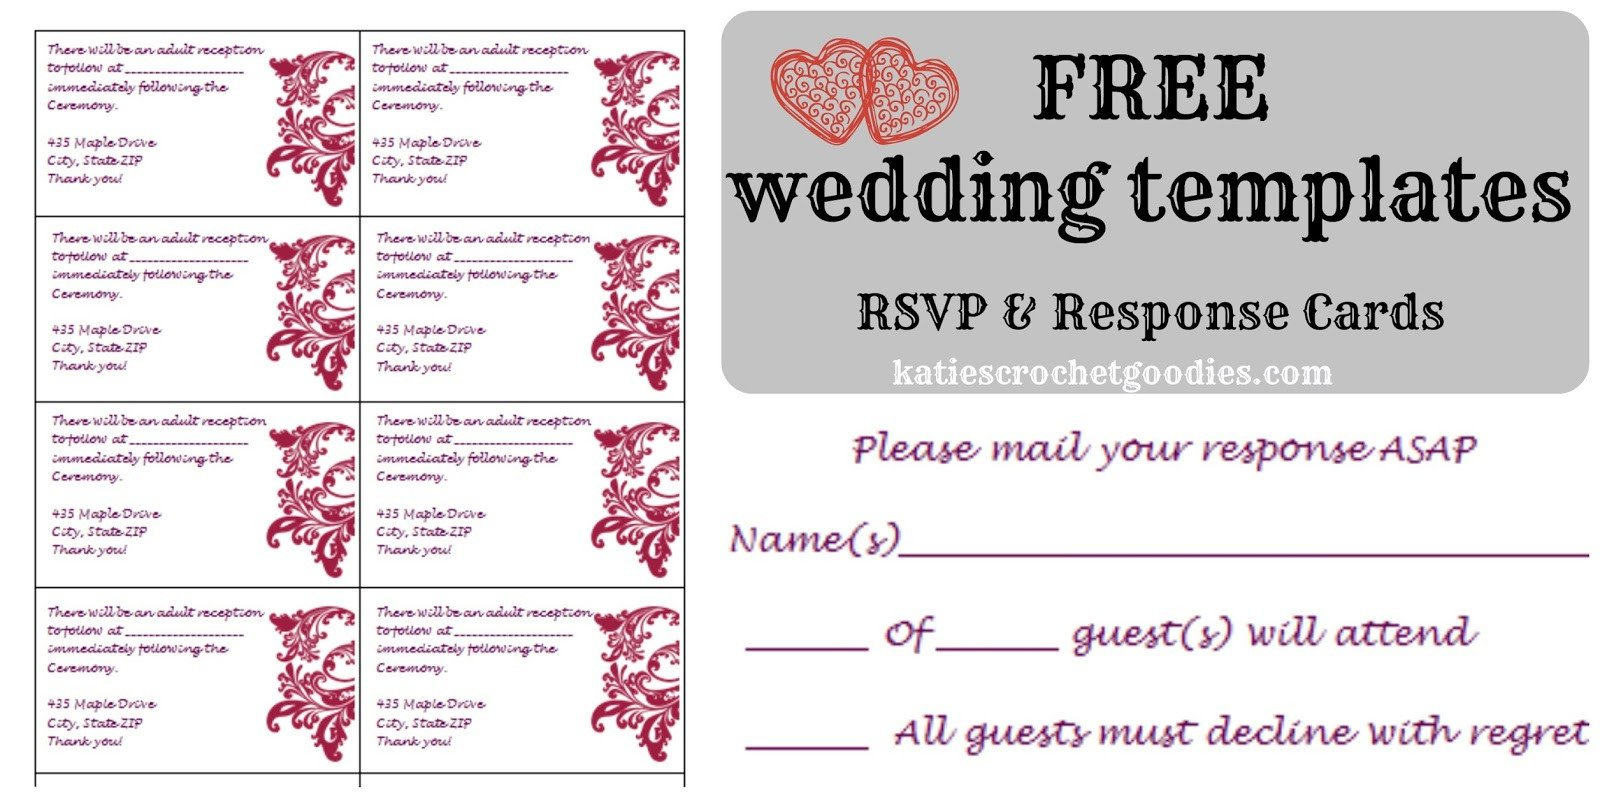 Wedding Rsvp Cards Templates Free Wedding Templates Rsvp & Reception Cards Katie S